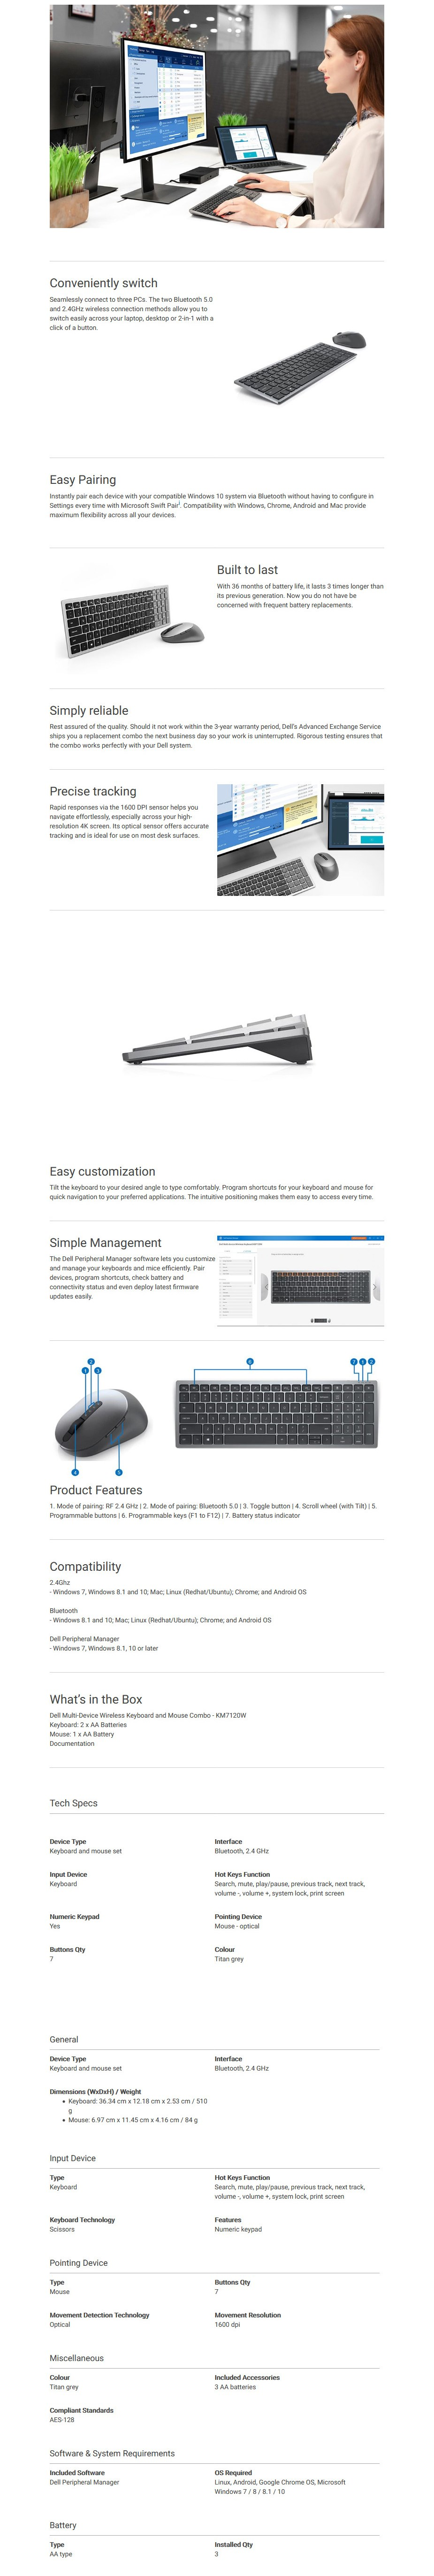 dell-km7120w-multidevice-wireless-kafeyboard-and-mouse-ac36523-1.jpg